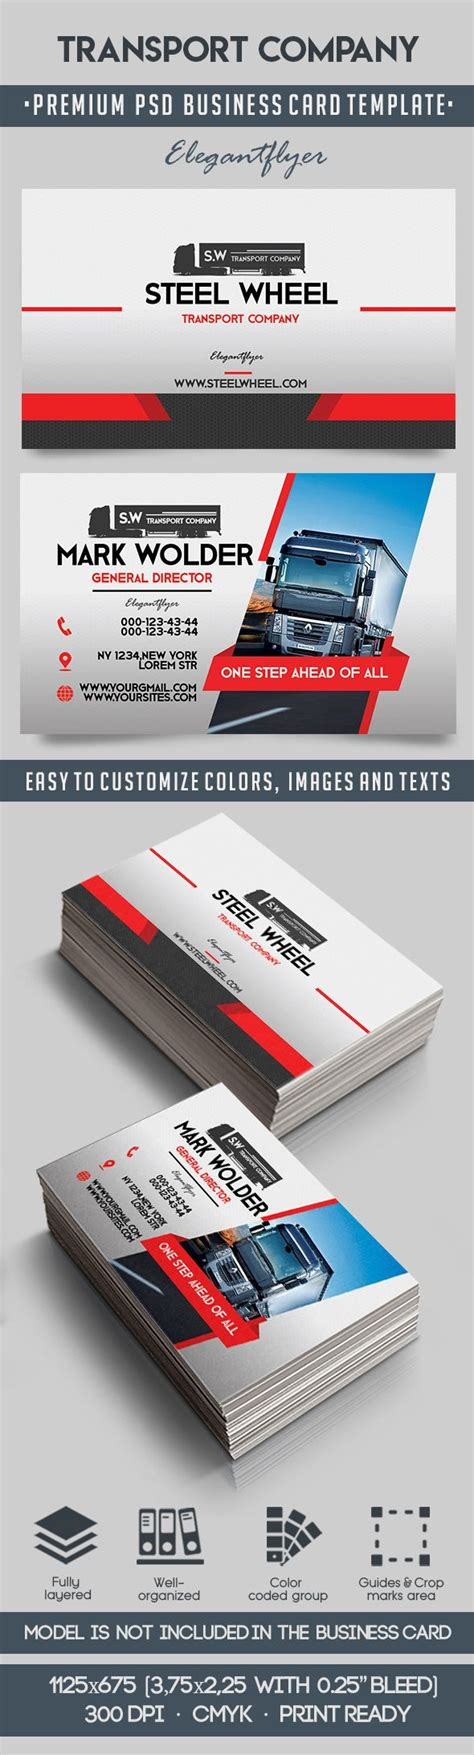 Business Cards For Transport Company transport company business card by elegantflyer